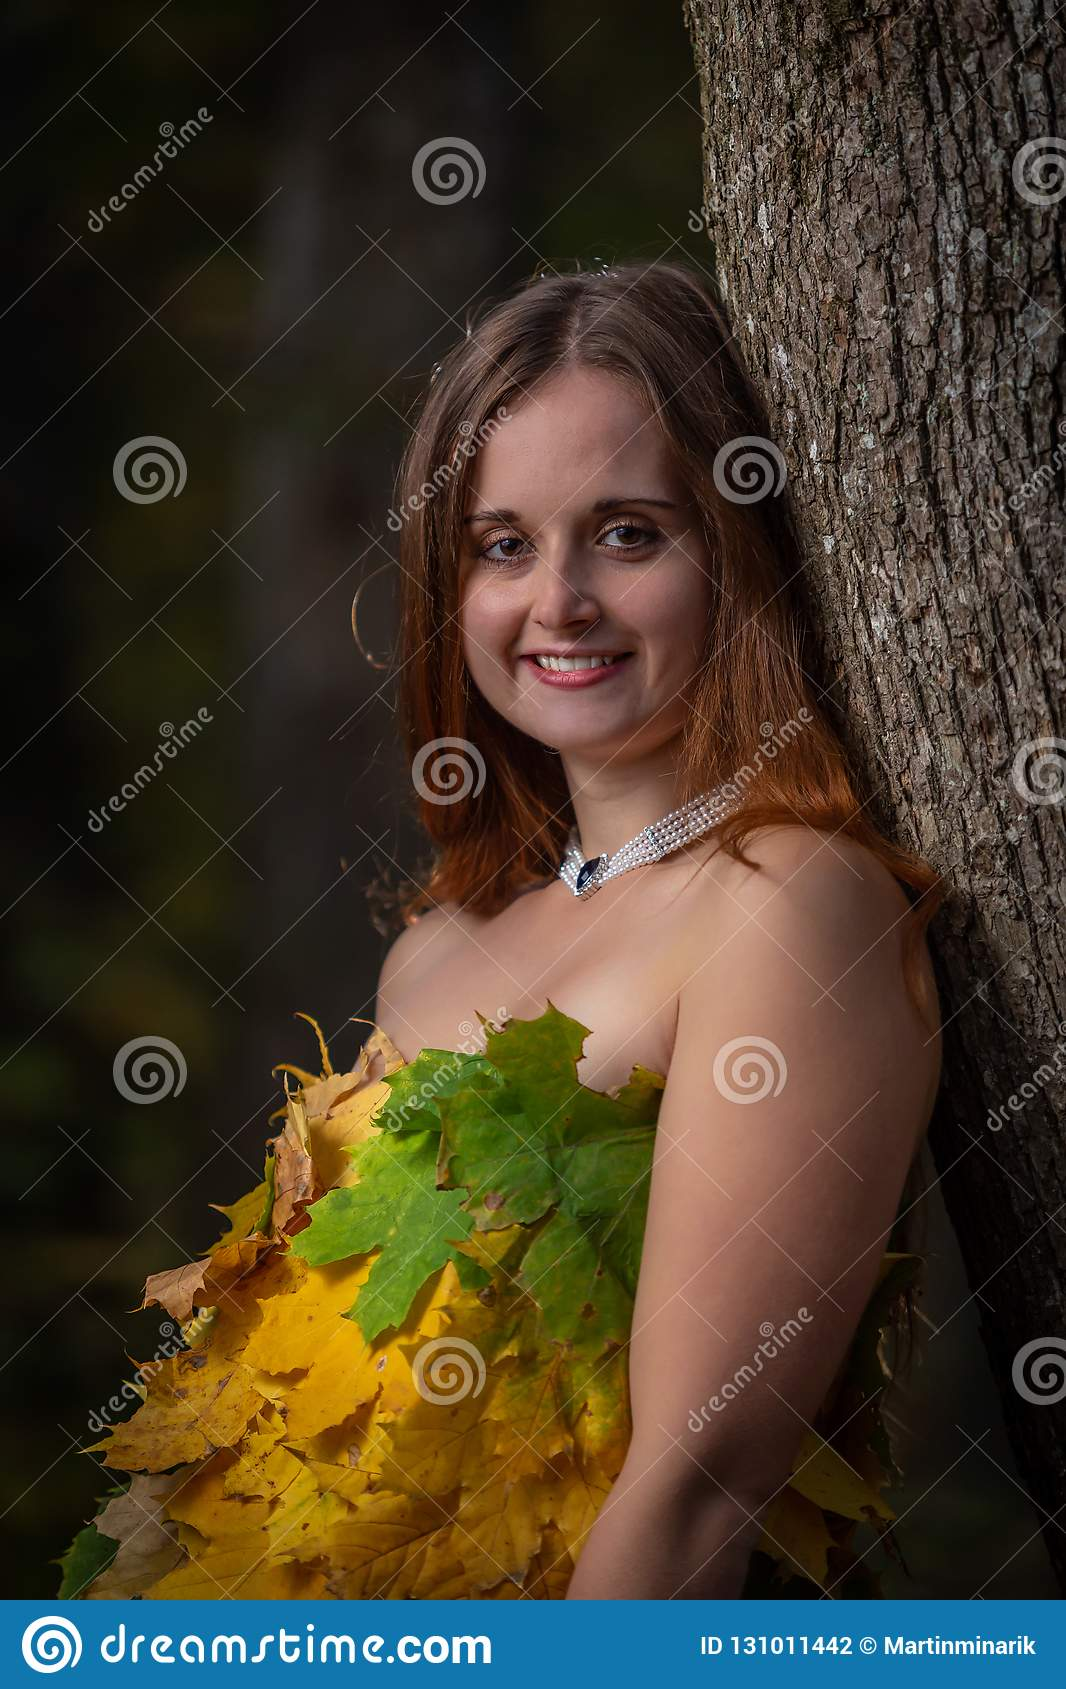 Close up on beautiful young girl with long hair leaning on tree, wearing dress made from colorful leaves in the autumn forest